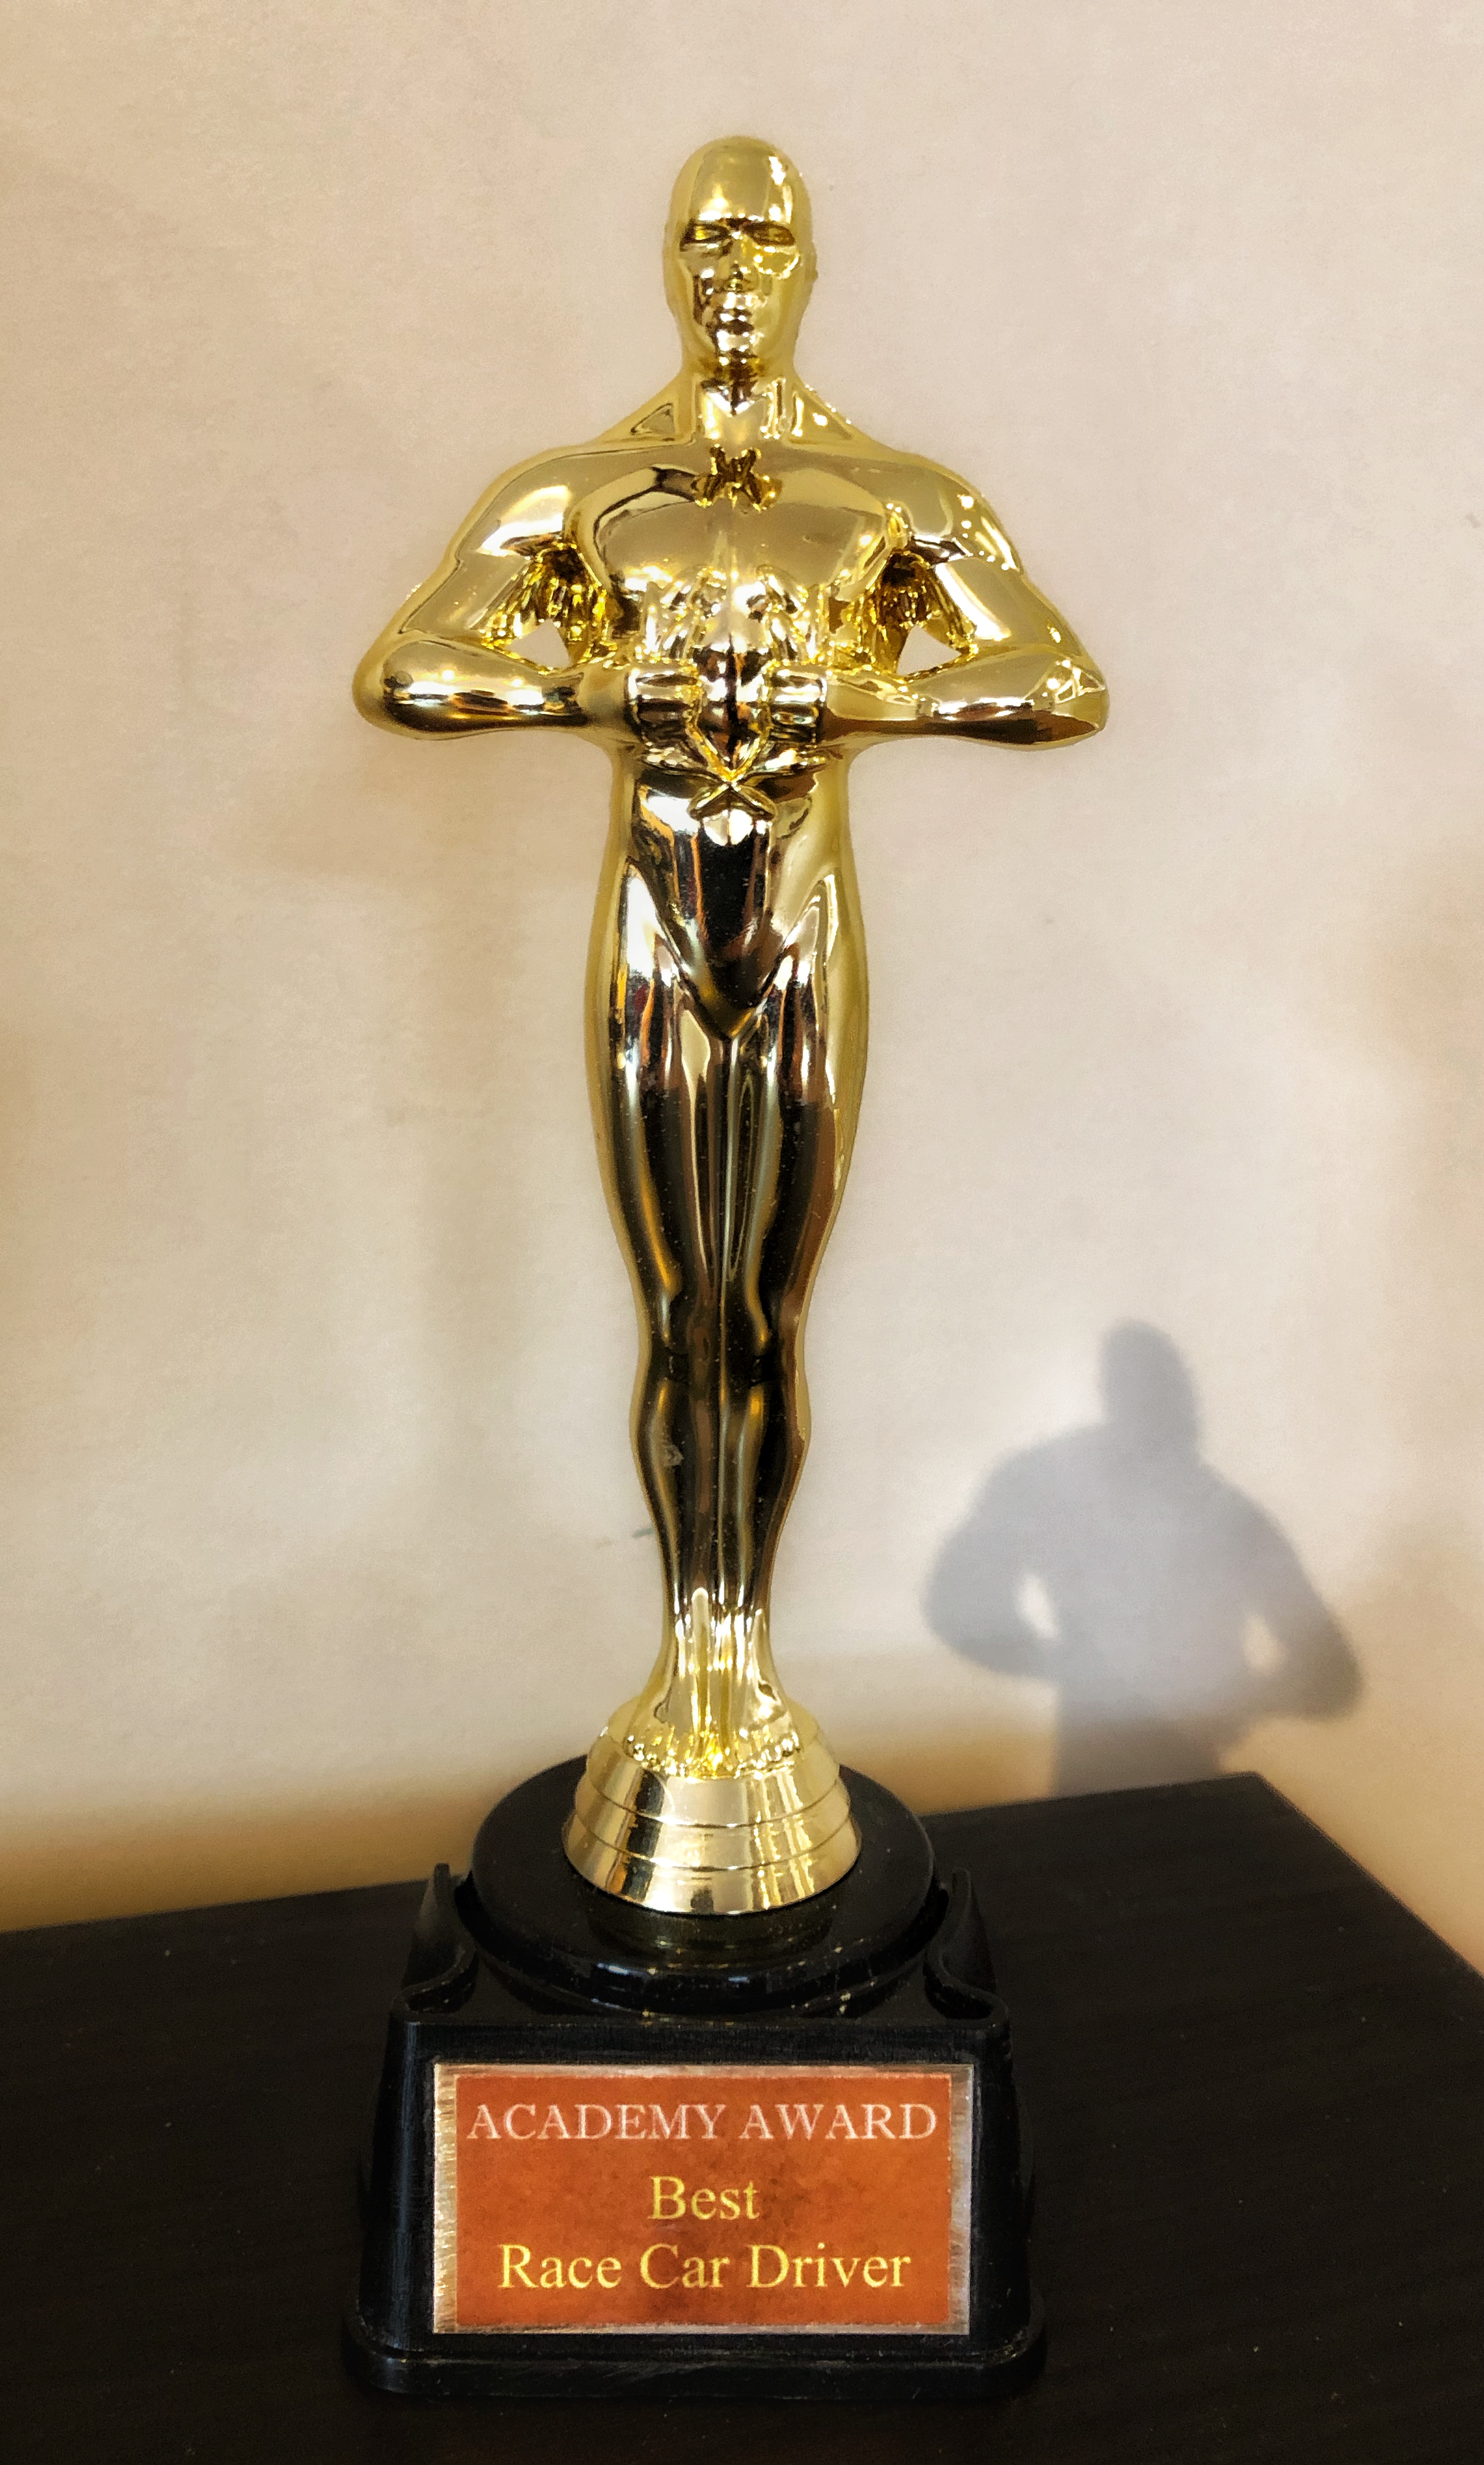 What? Me worthy? - The Academy has spoken.